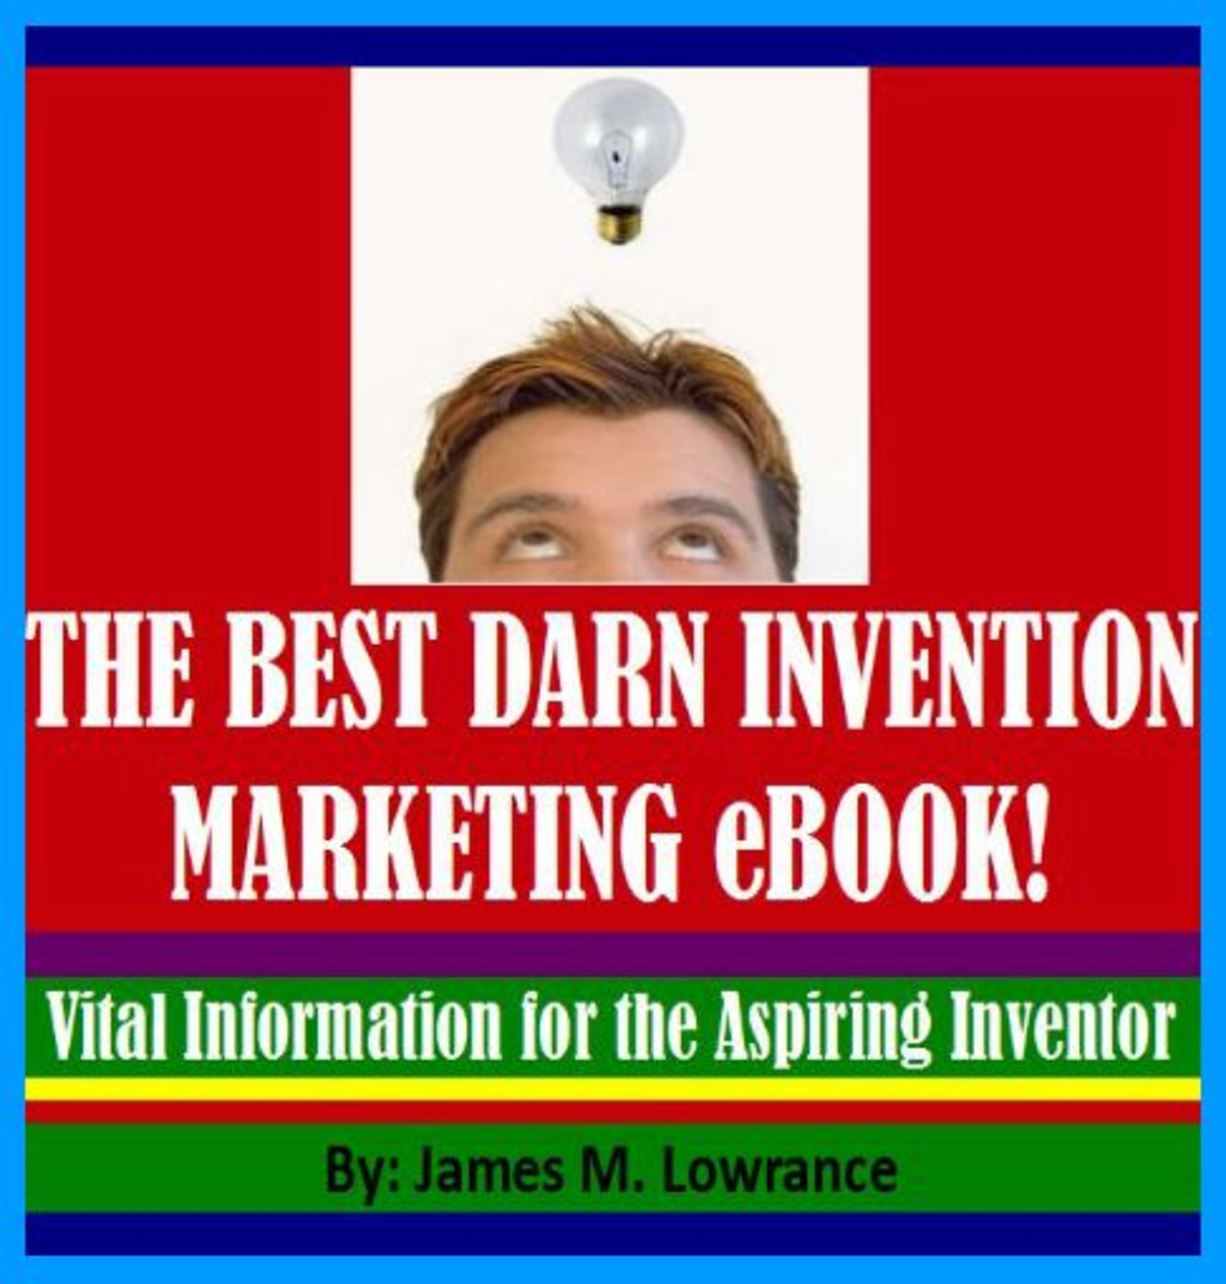 The Best Darn Invention Marketing eBook! By: James Lowrance